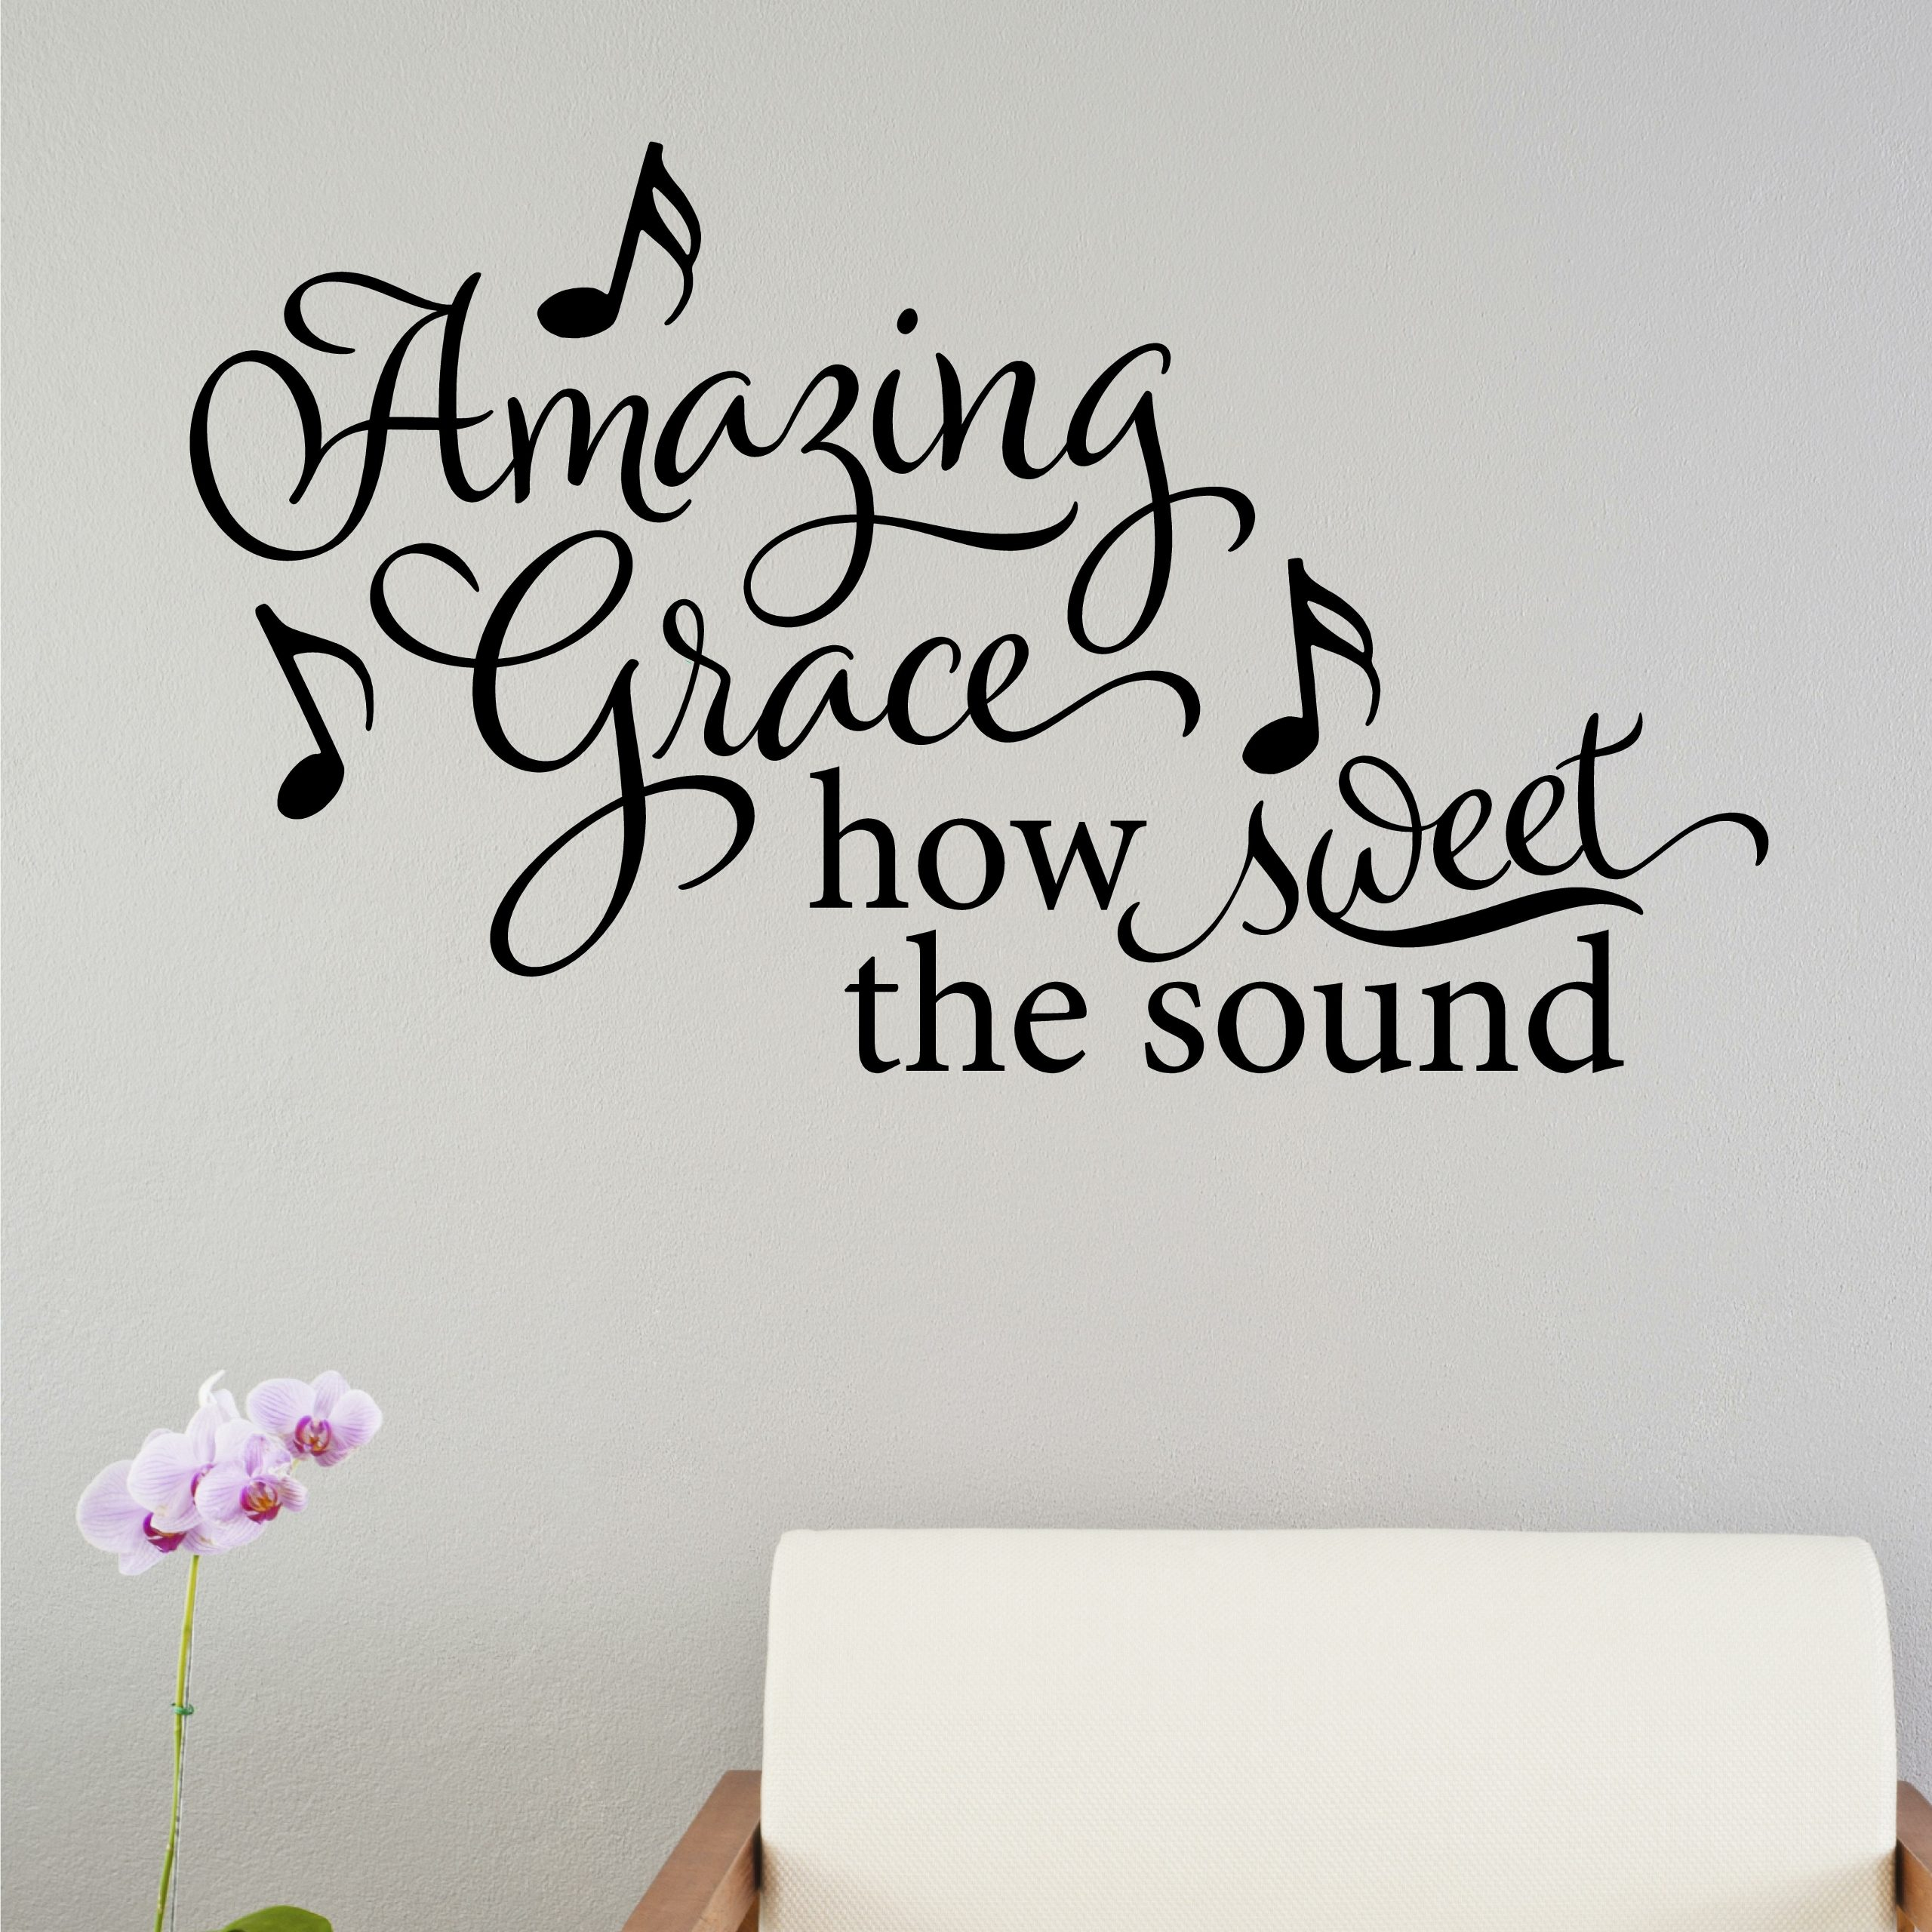 Amazing Grace How Sweet The Sound Wall Decal Intended For 2018 Blended Fabric Amazing Grace Wall Hangings (View 4 of 20)